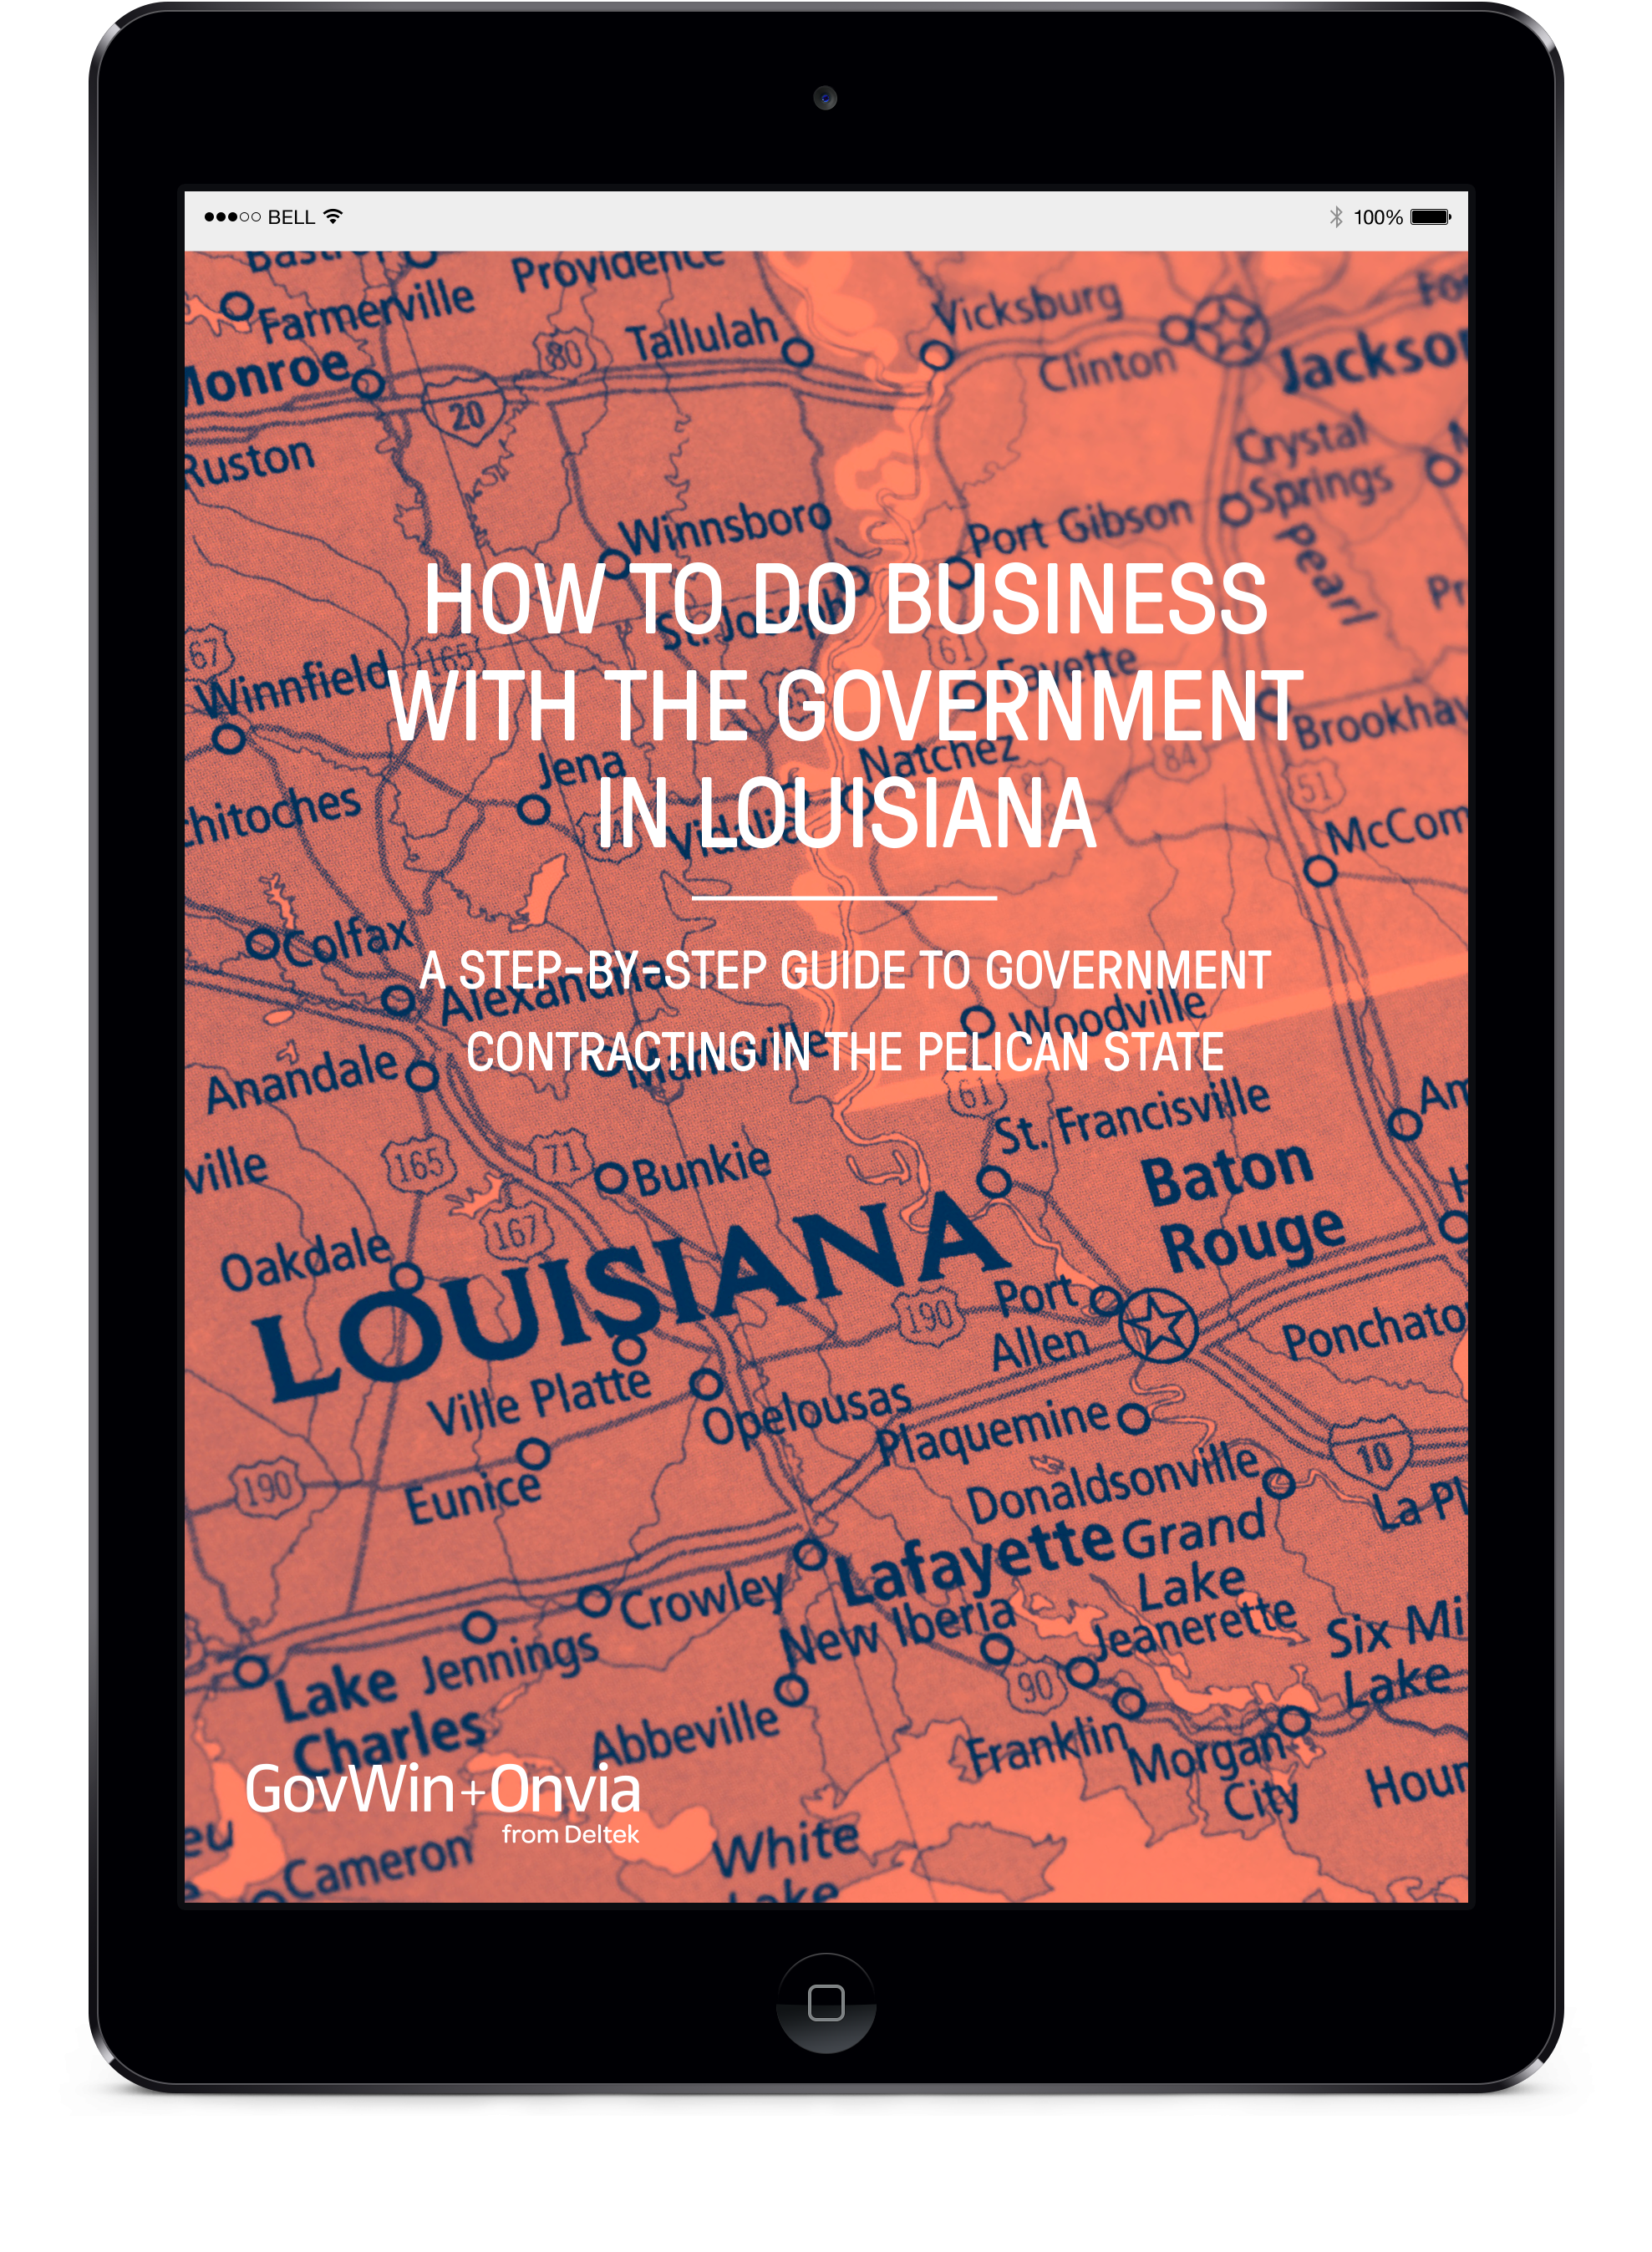 How to do Business with the Government in Louisiana